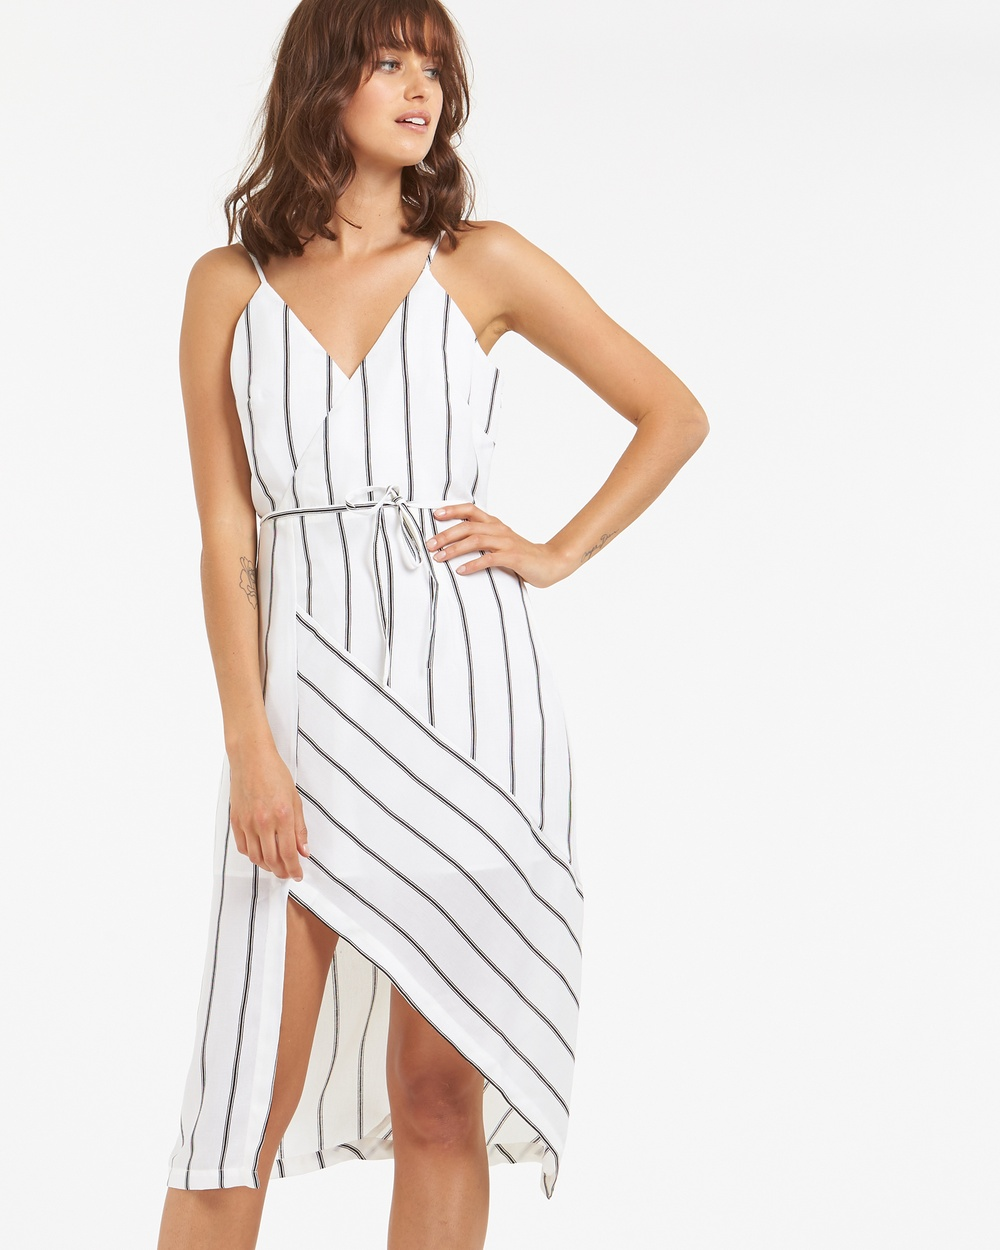 Amelius Groom Dress Dresses White-Stripes Groom Dress